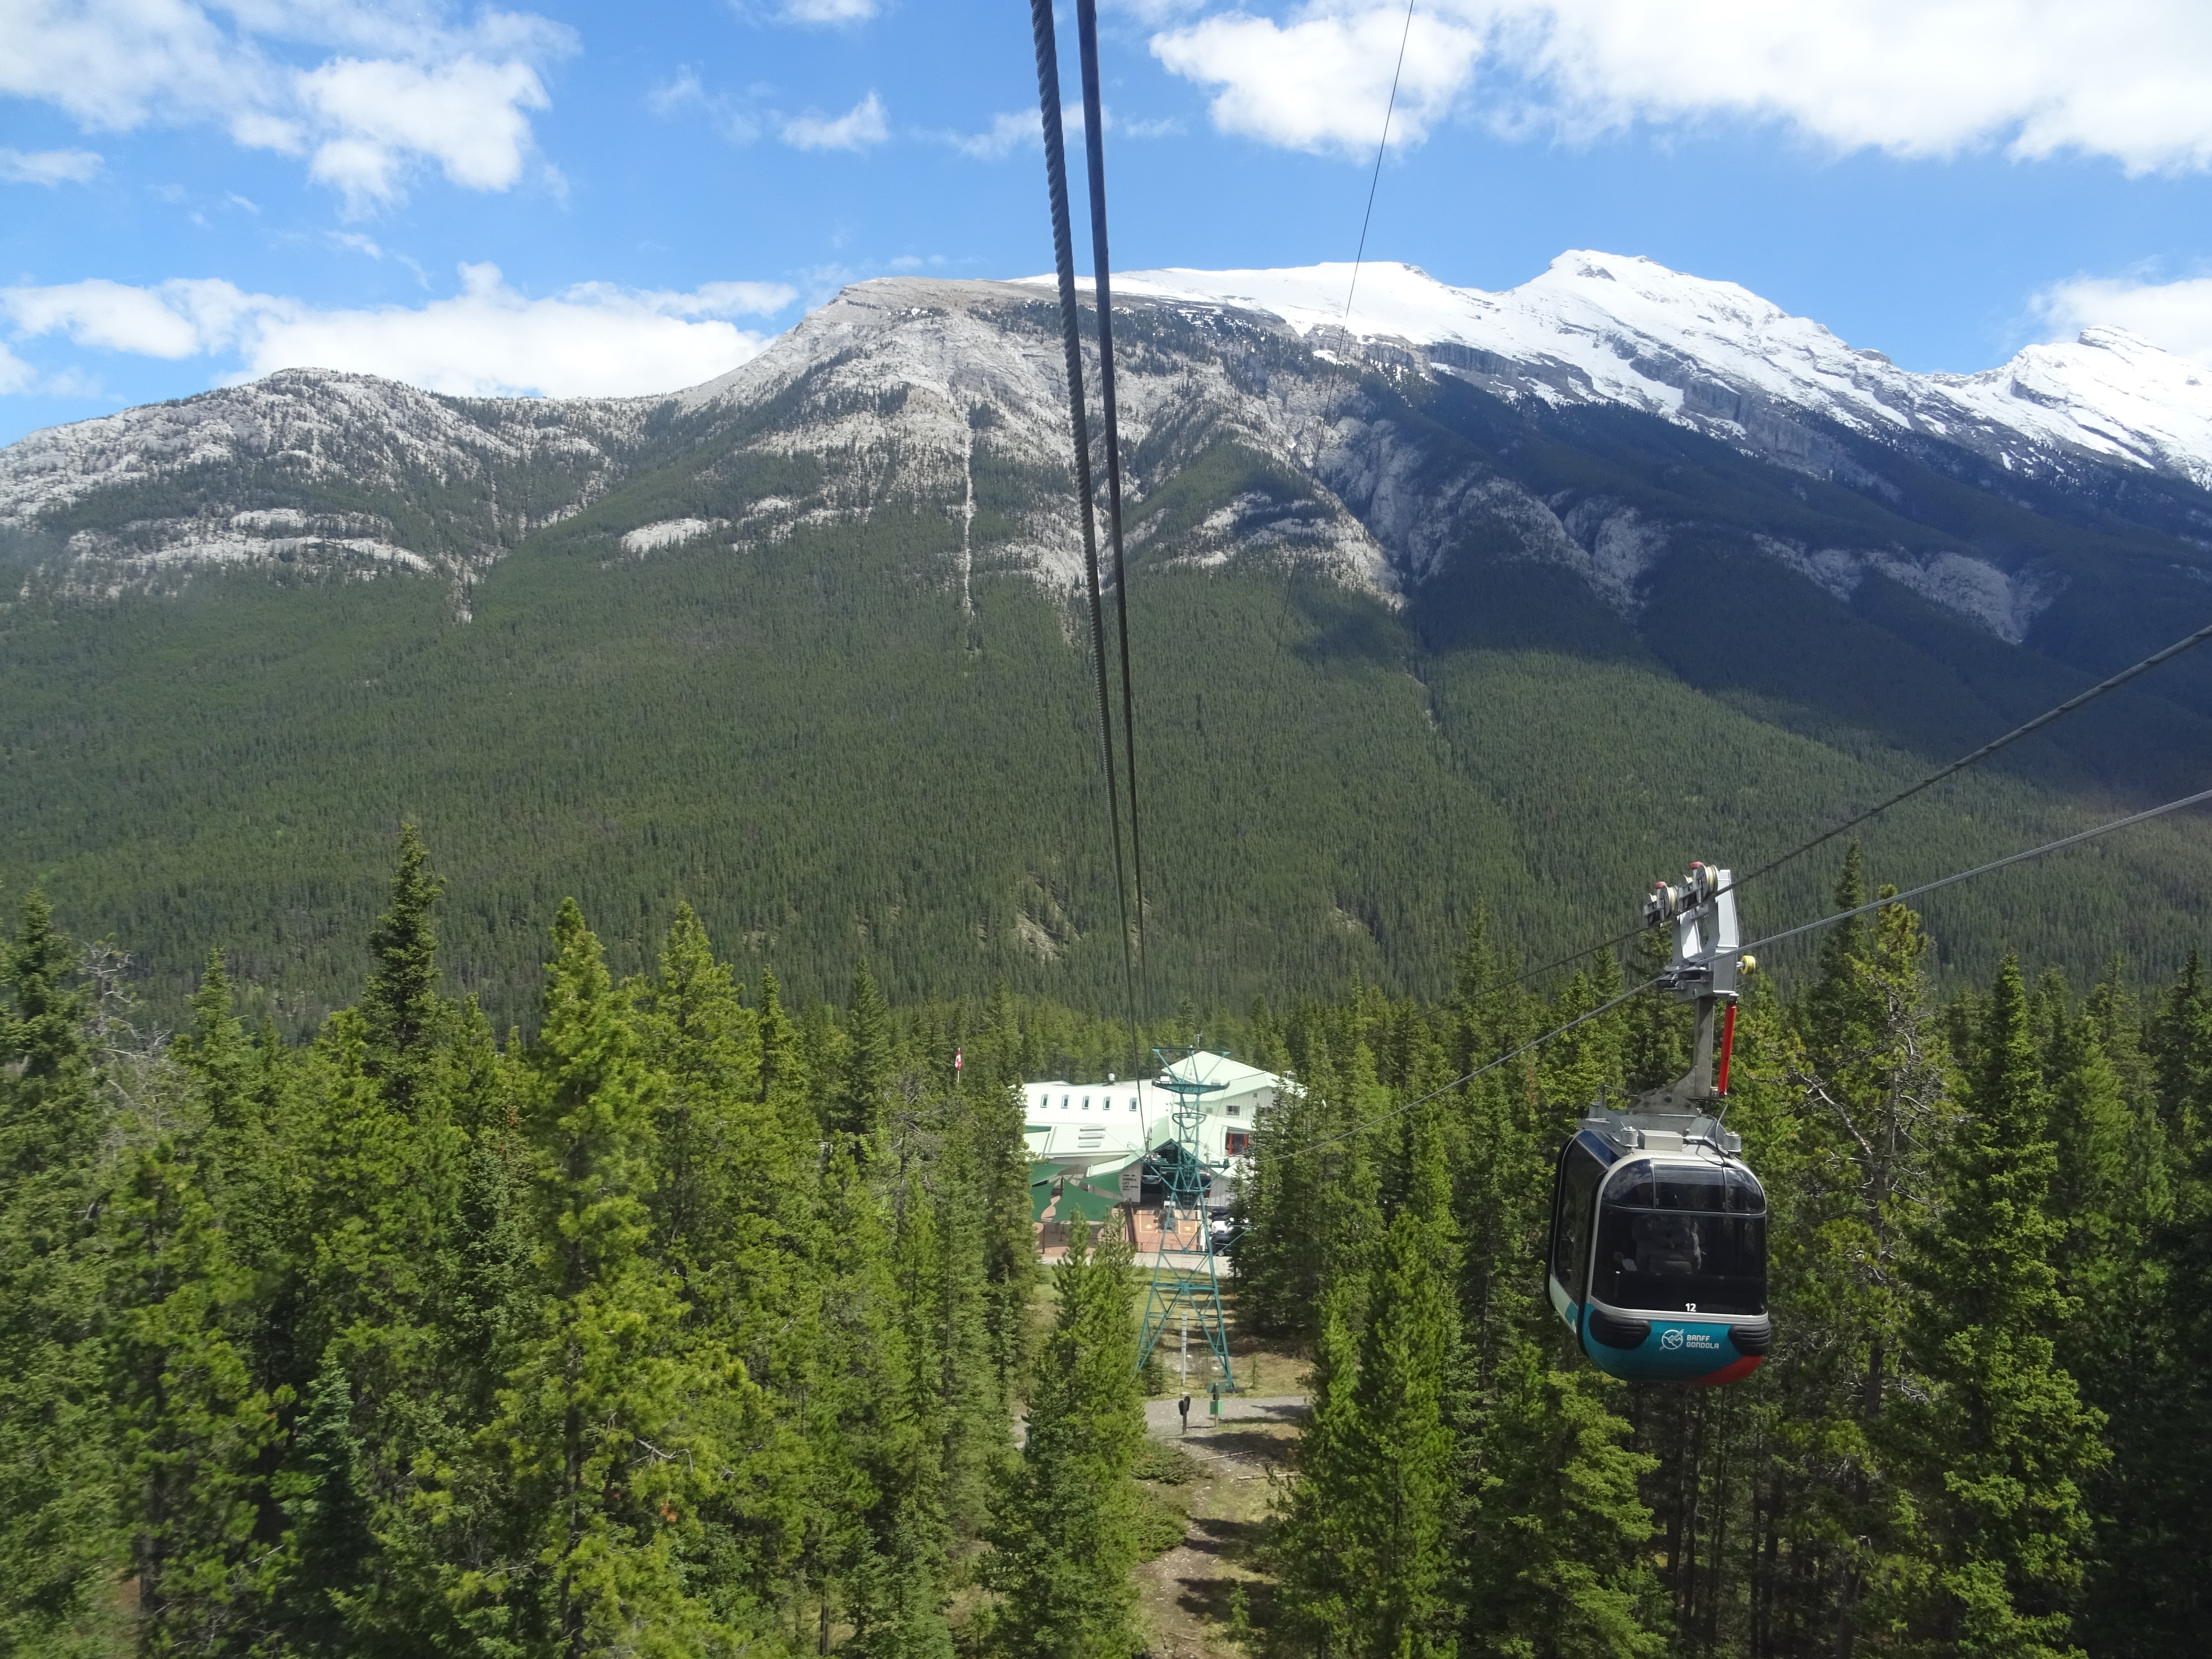 Sulfur mountain Gondola,Parc National de Banff, Alberta, Canada